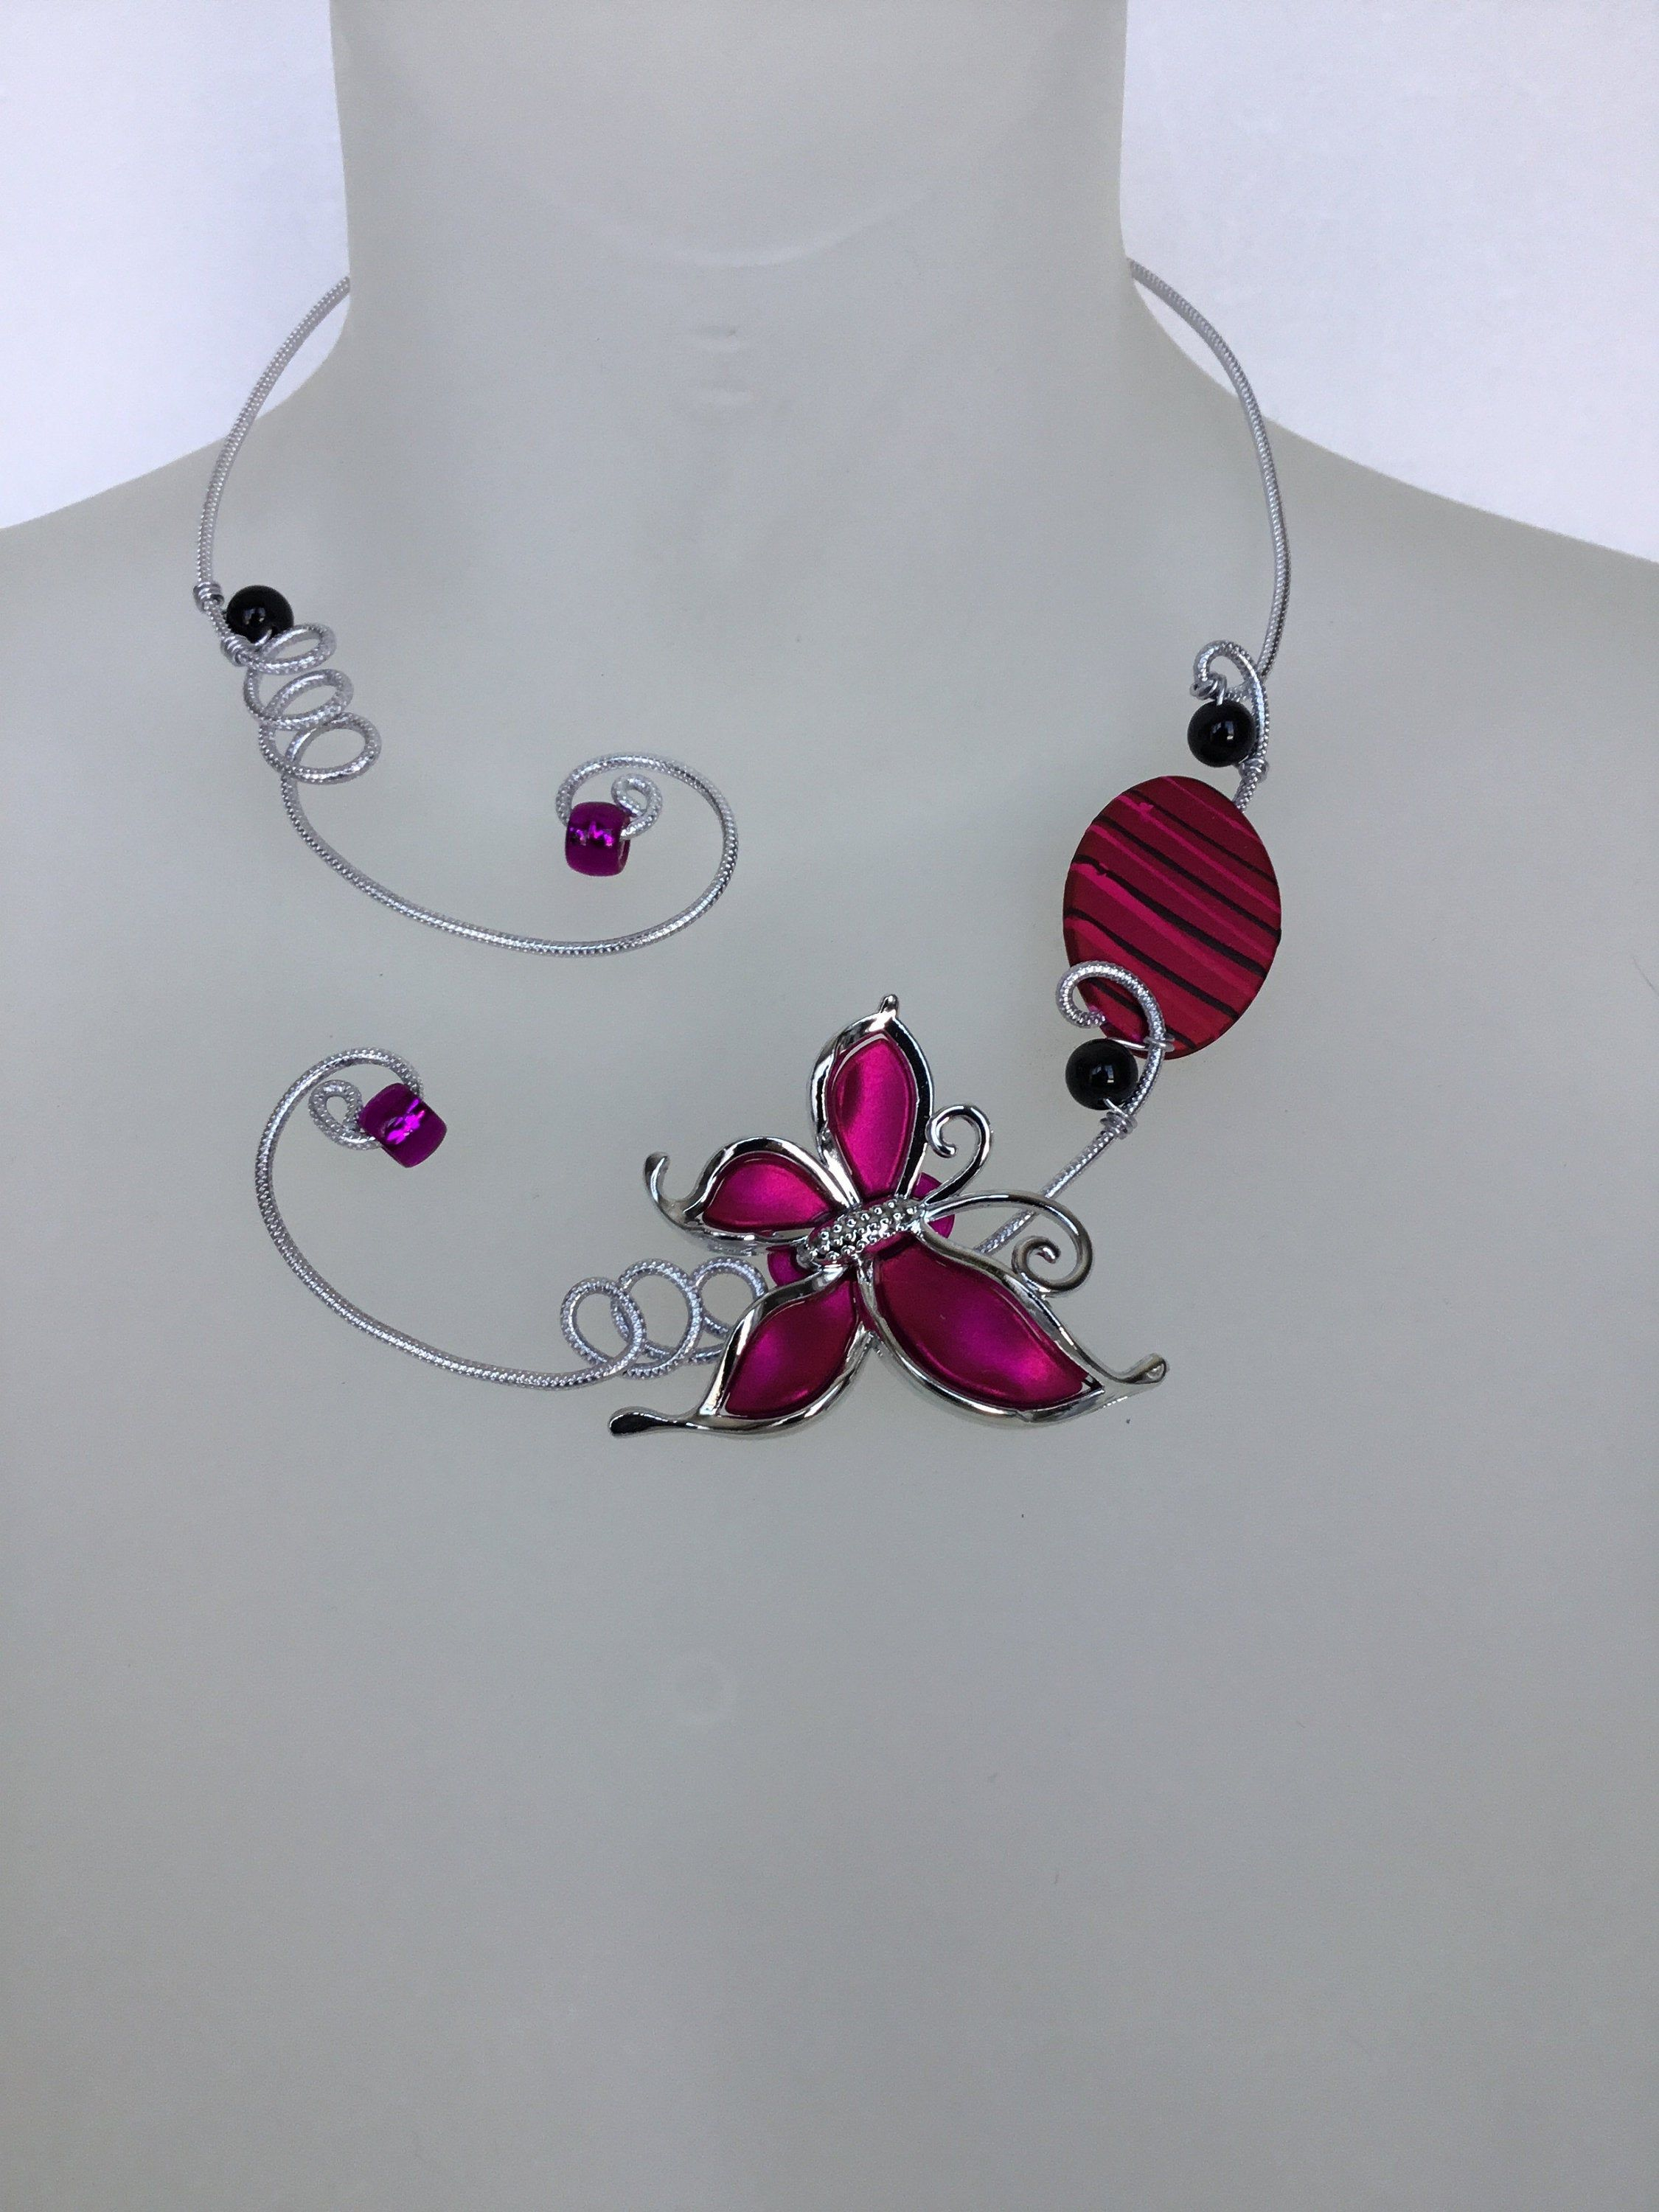 Fuchsia Open Necklace Fuchsia Necklace Fuchsia Jewelry Butterfly Necklace Aluminium Wire Necklace Metal Wire Necklace Metal Jewelry In 2020 Fuchsia Necklace Bridesmaid Necklace Bridesmaid Jewelry